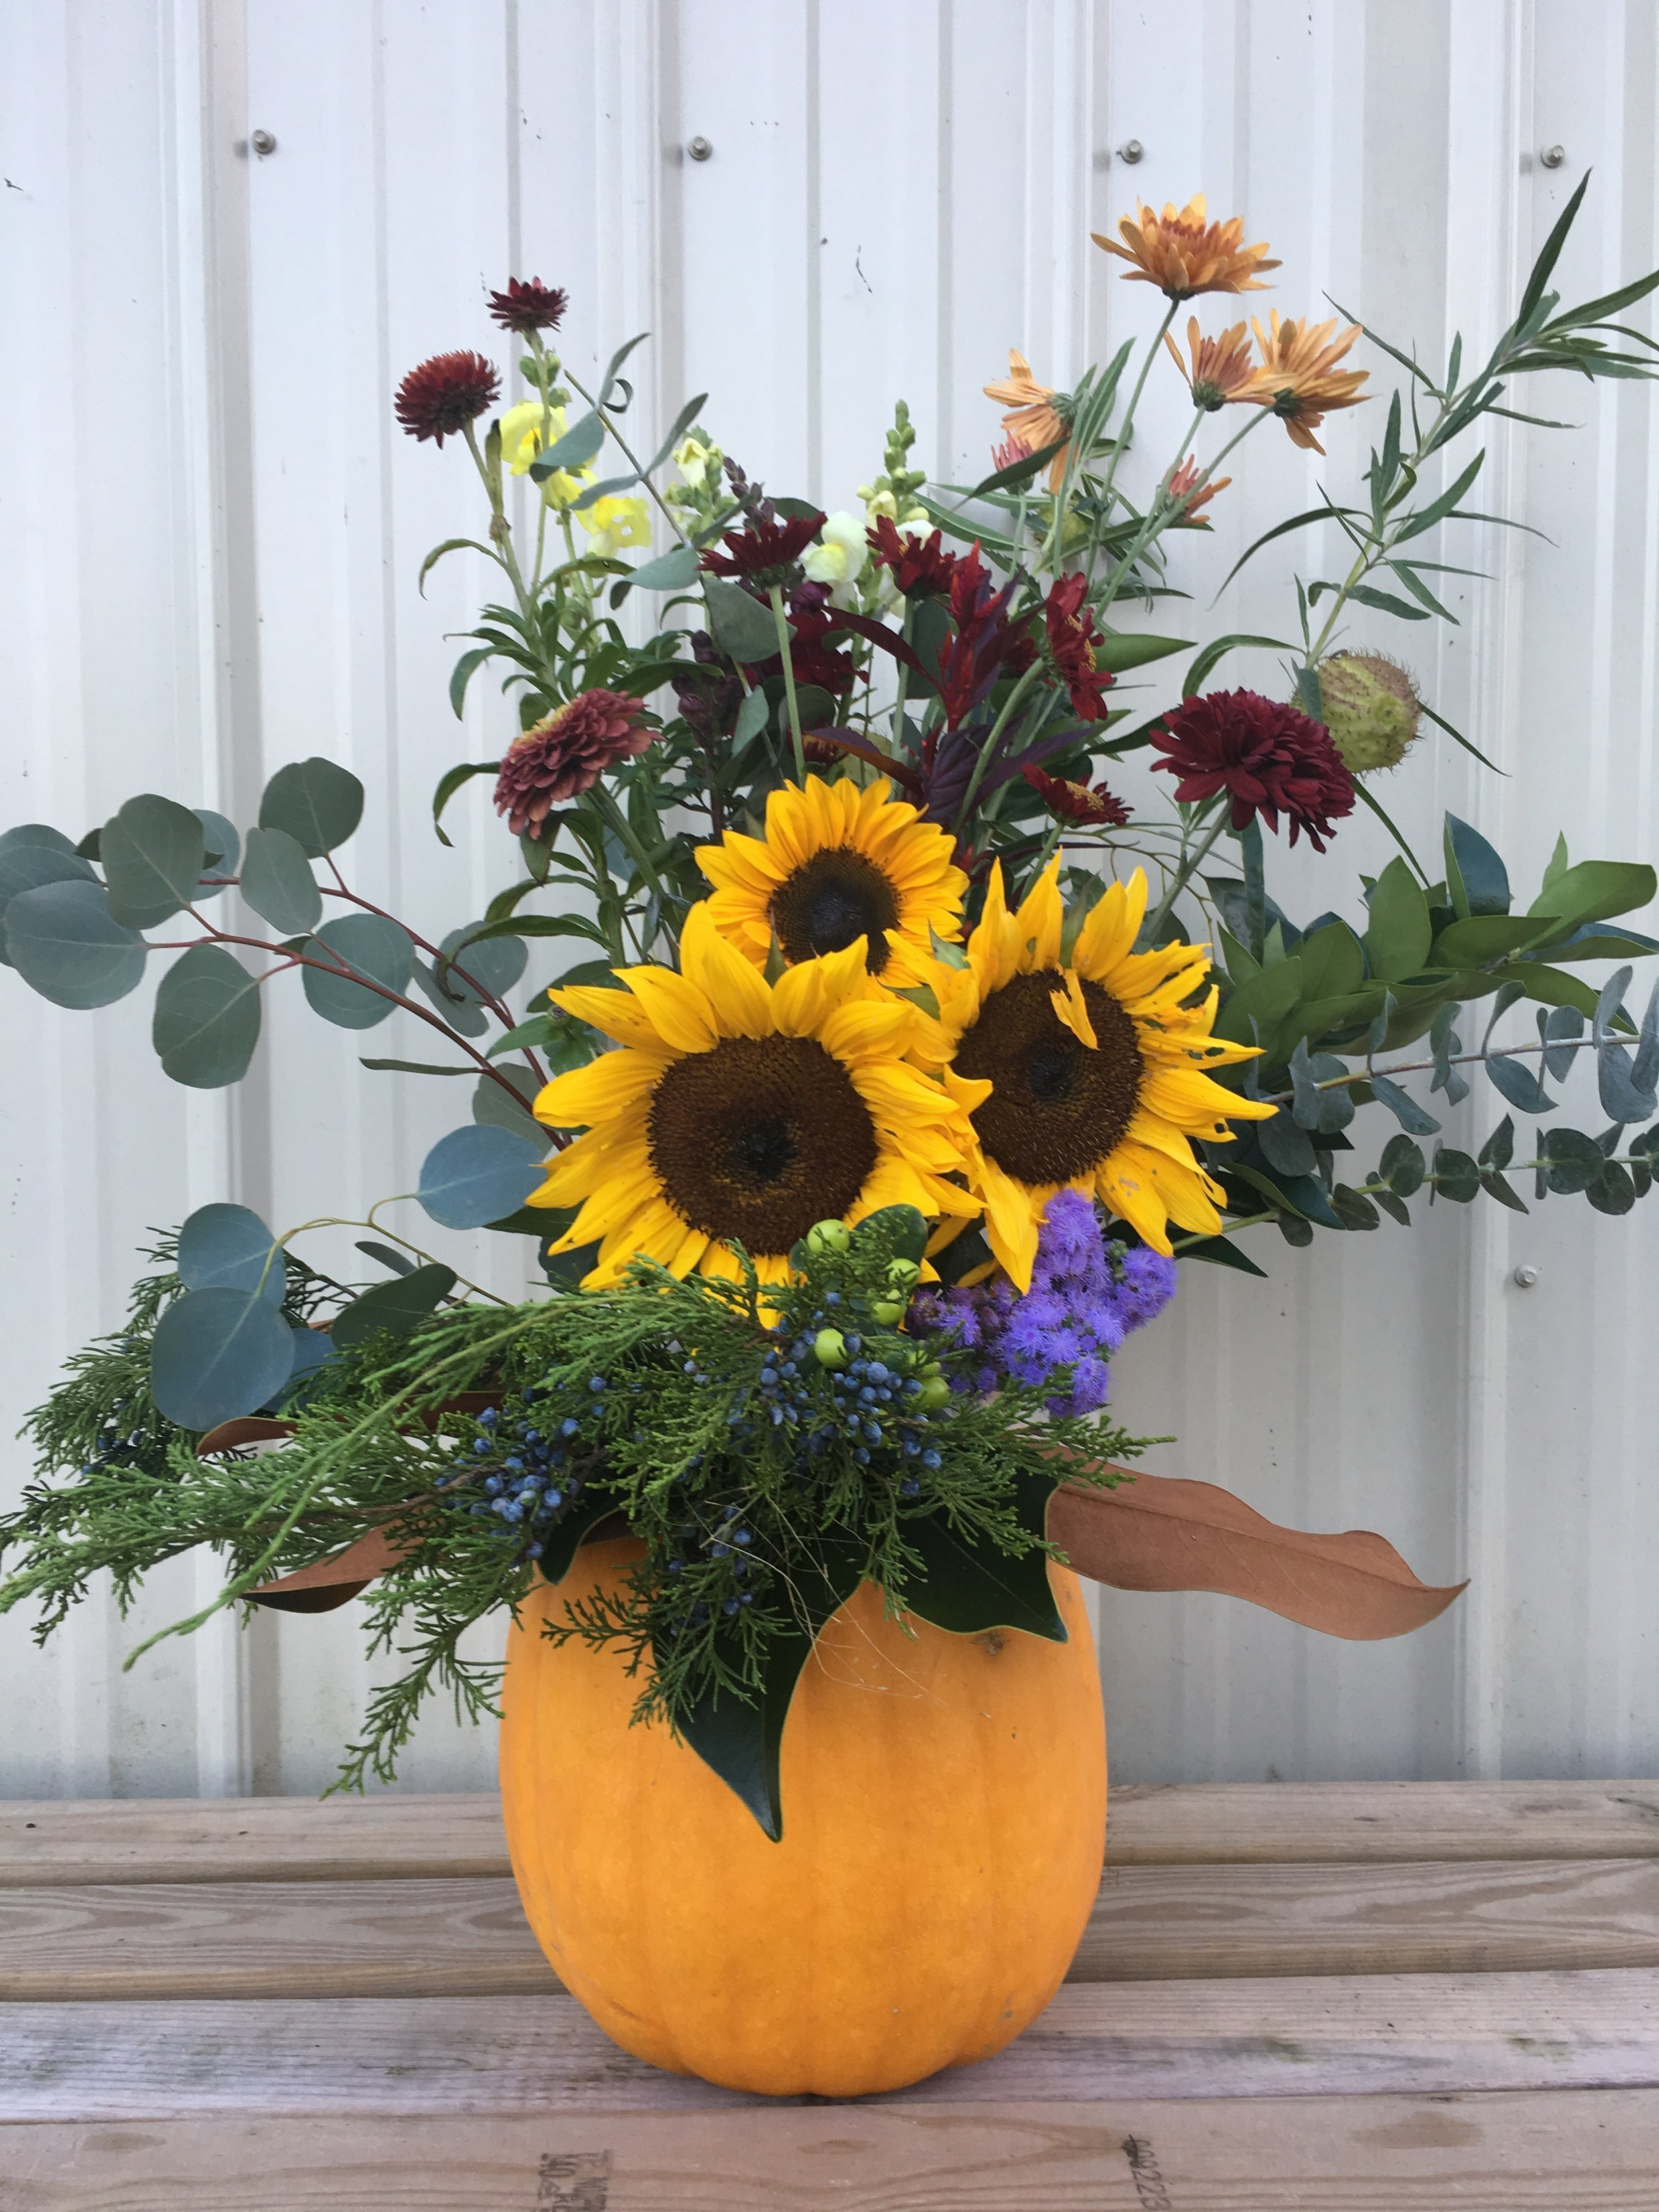 A pumpkin serves as the ultimate fall vase, right?